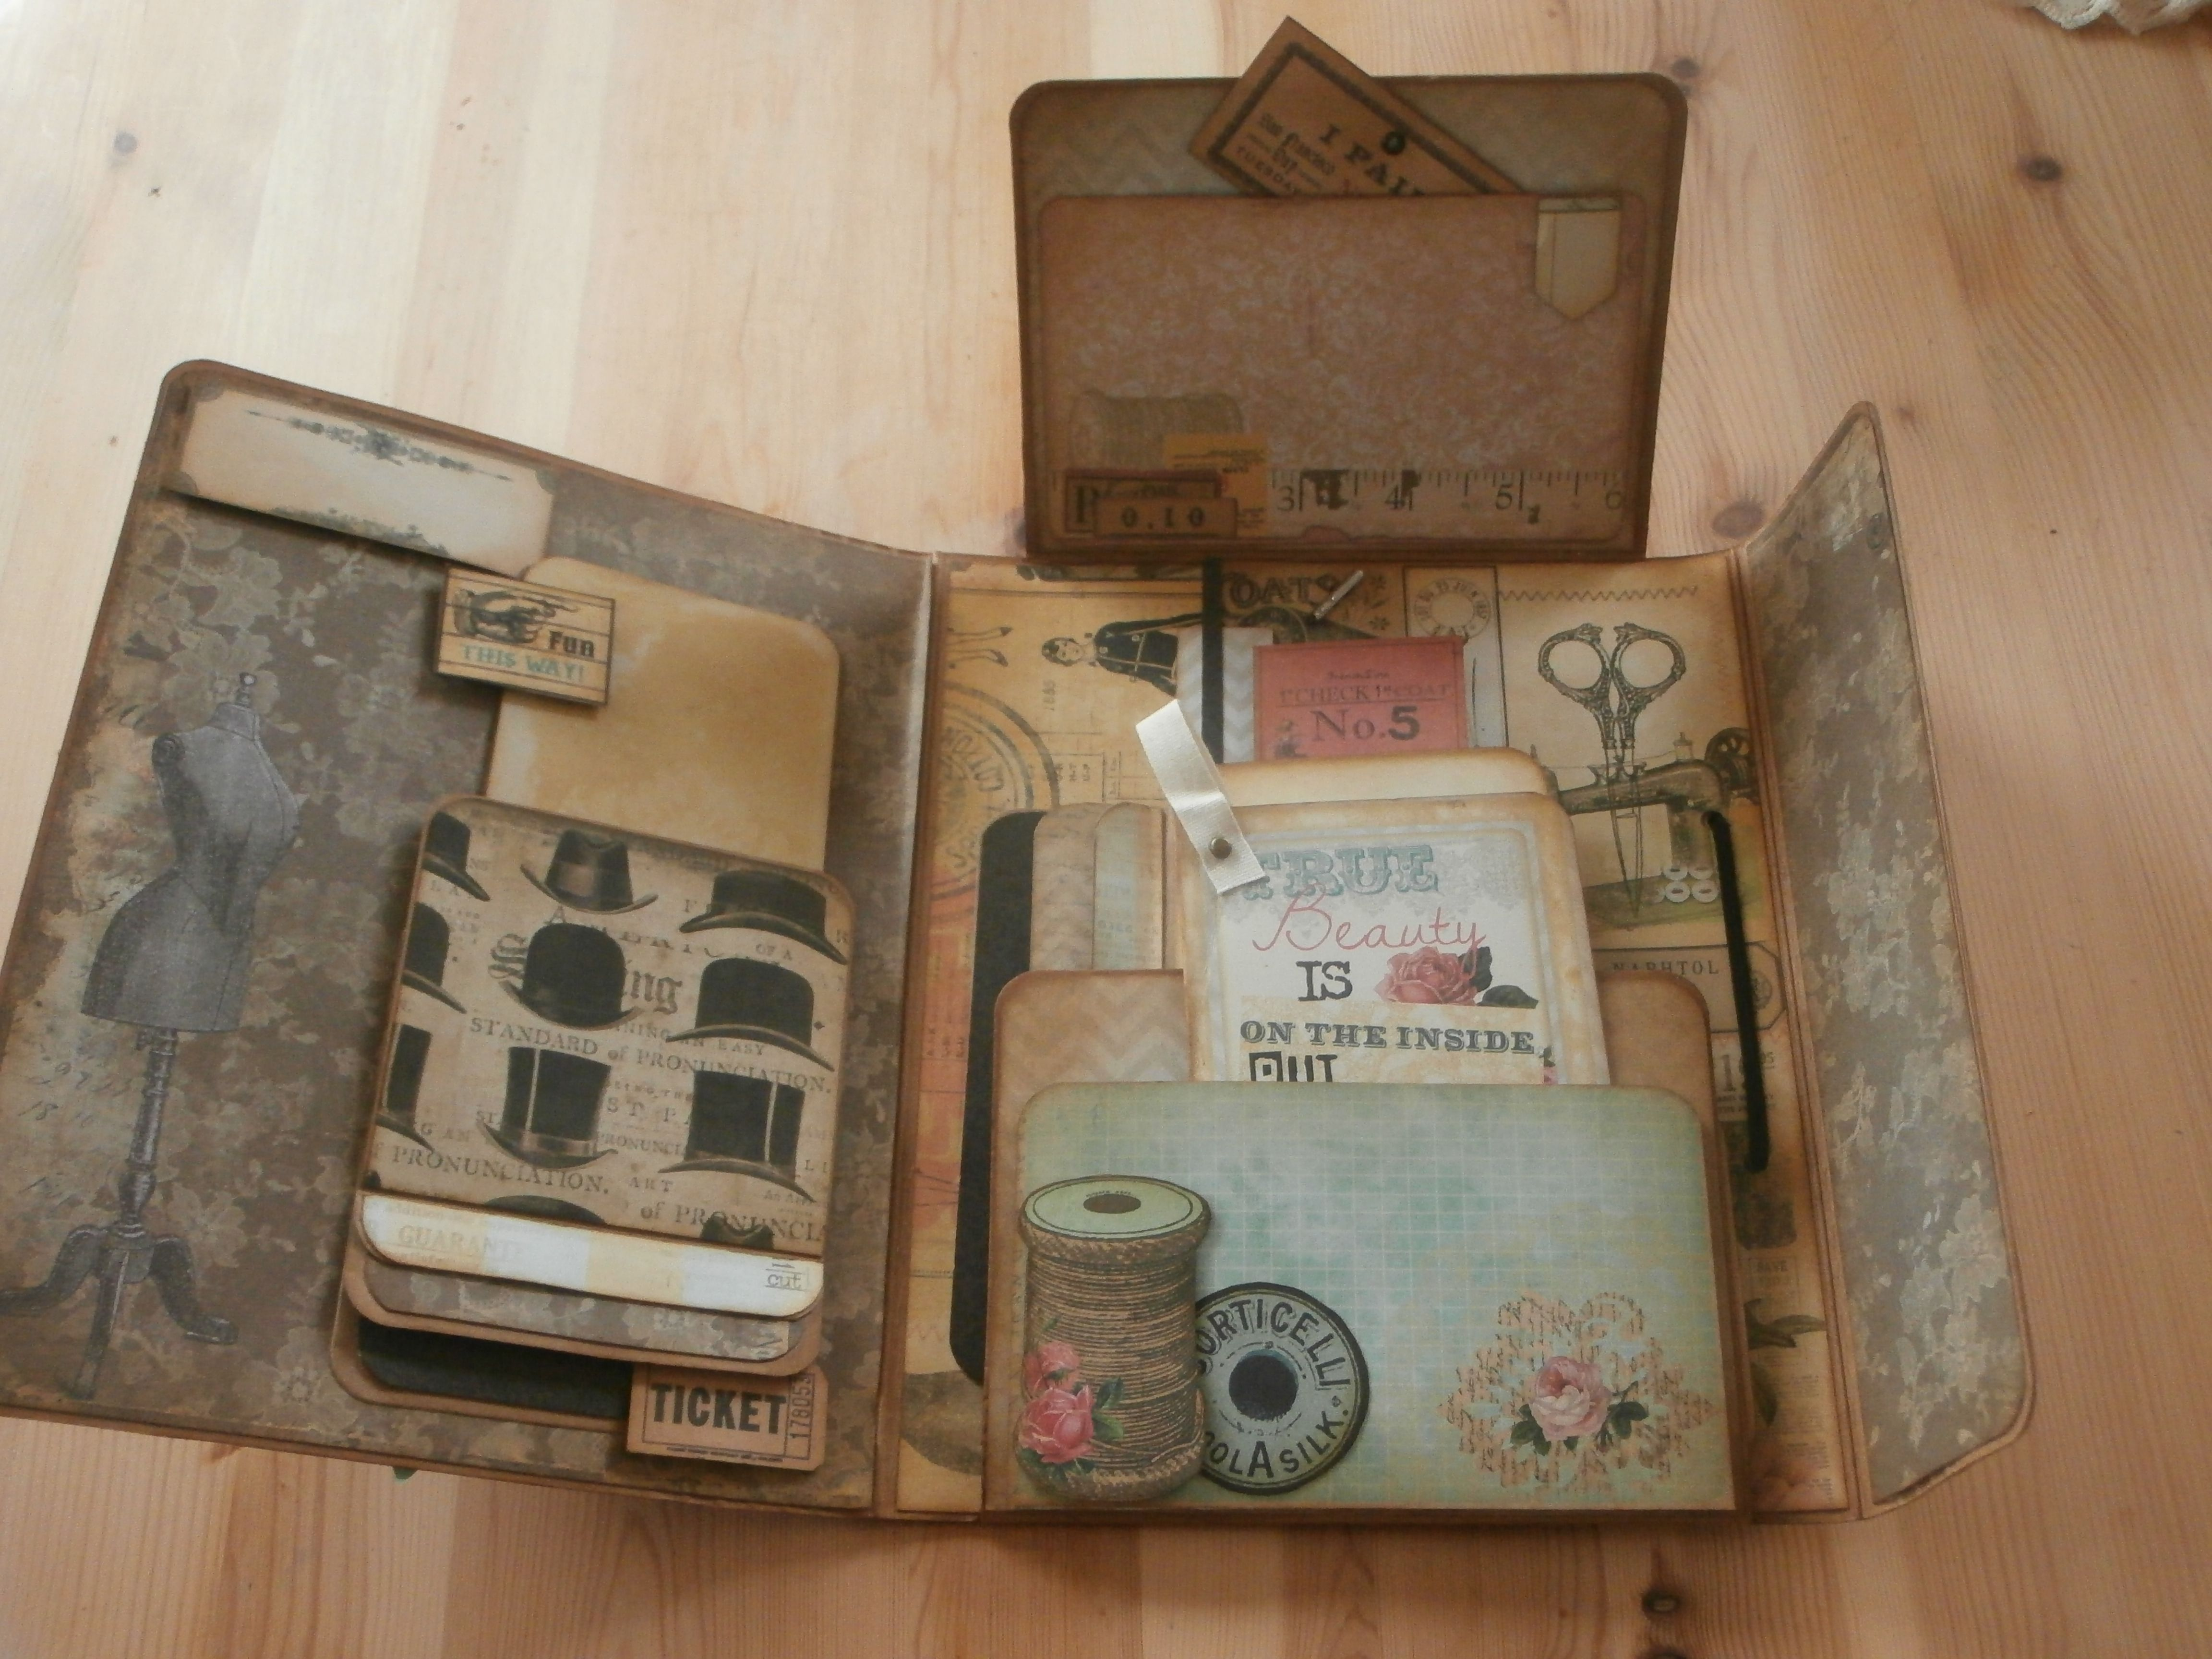 Scrapbook ideas abc album - My Decorated Tim Holtz Folio Inside Pages Using Marion Smith Garment District Papers